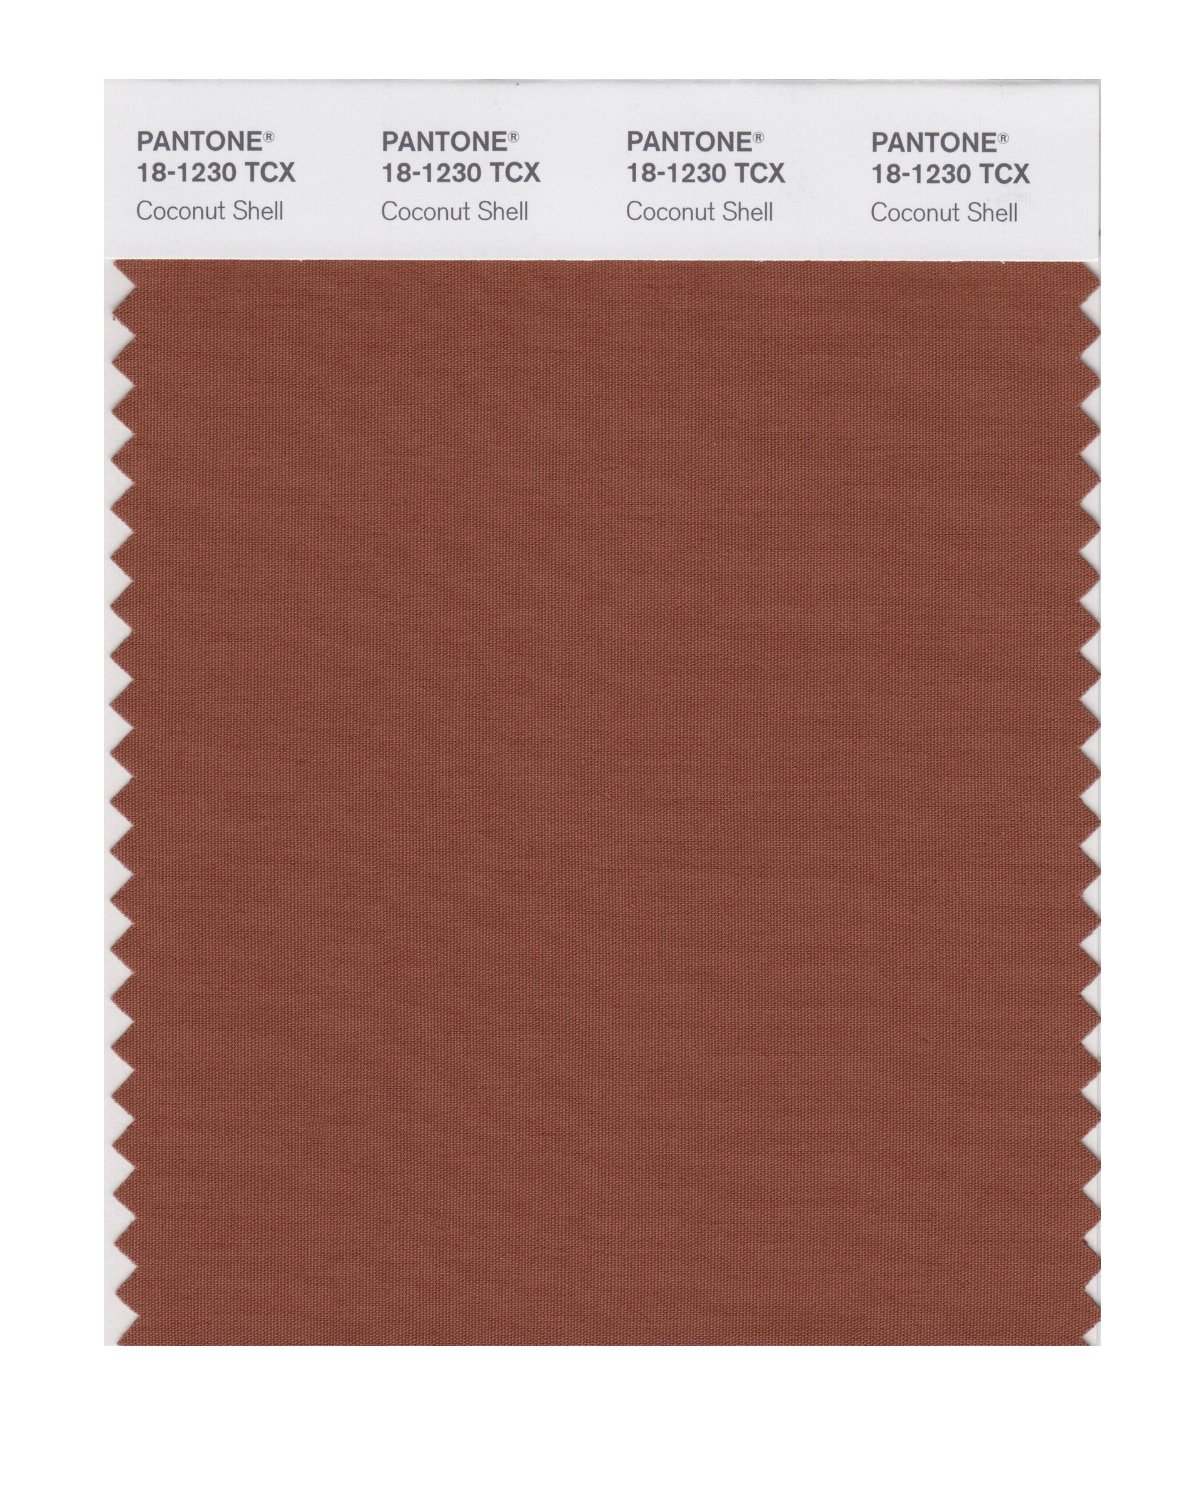 Pantone Smart Swatch 18-1230 Coconut Shell